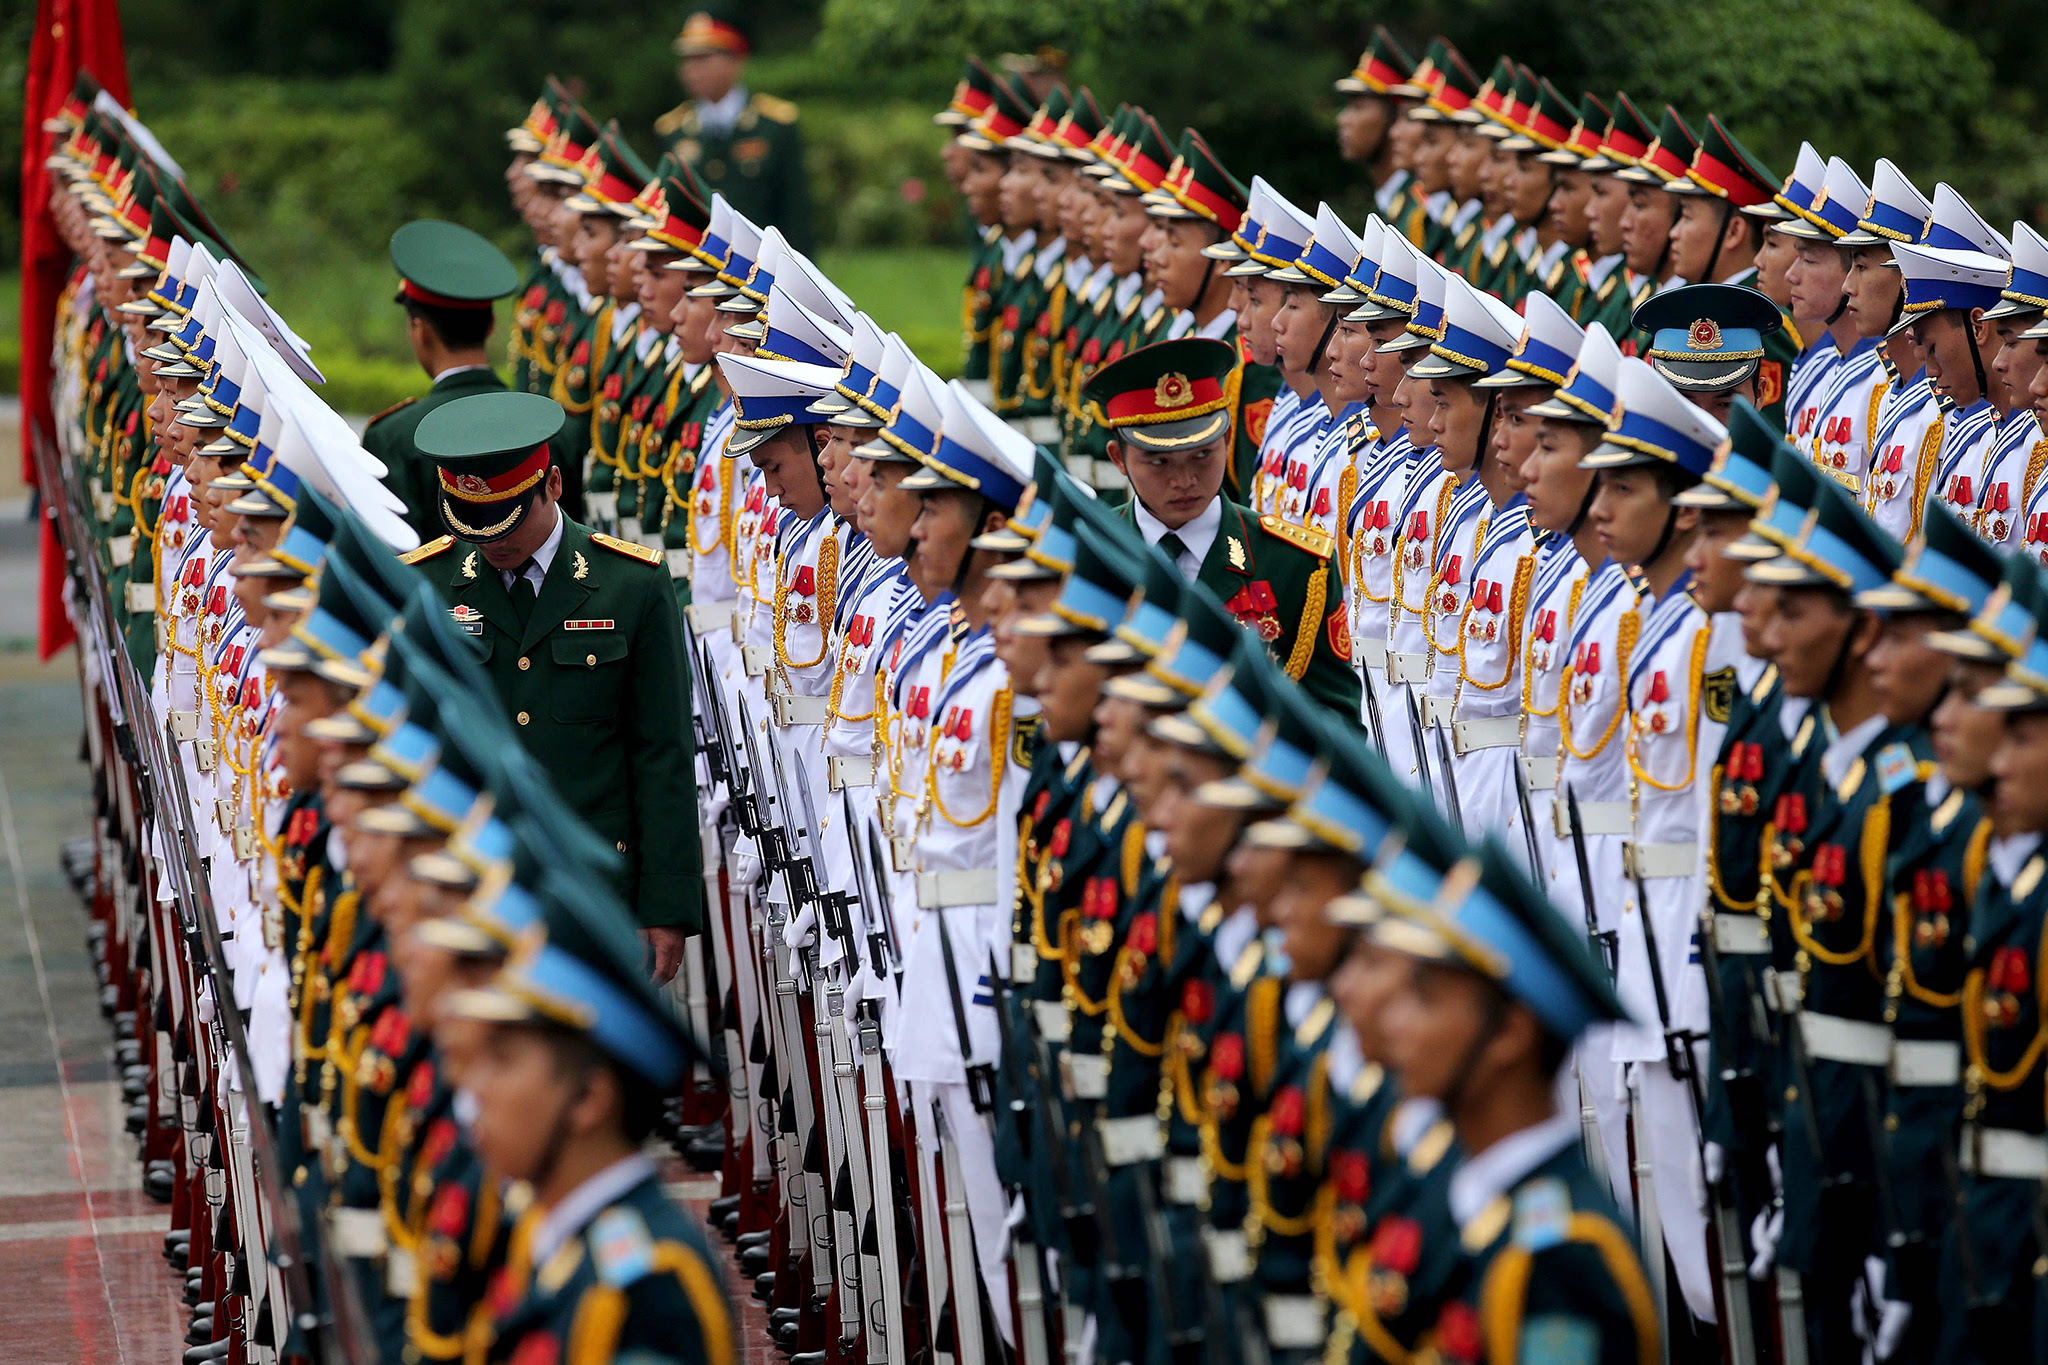 Members of the honor guard prepare before arrival of French President Francois Hollande (not pictured) at the Presidential Palace in Hanoi on September 6, 2016.   Holland is on a two day official visit. / AFP PHOTO / POOL / MINH HOANG / POOLMINH HOANG / POOL/AFP/Getty Images